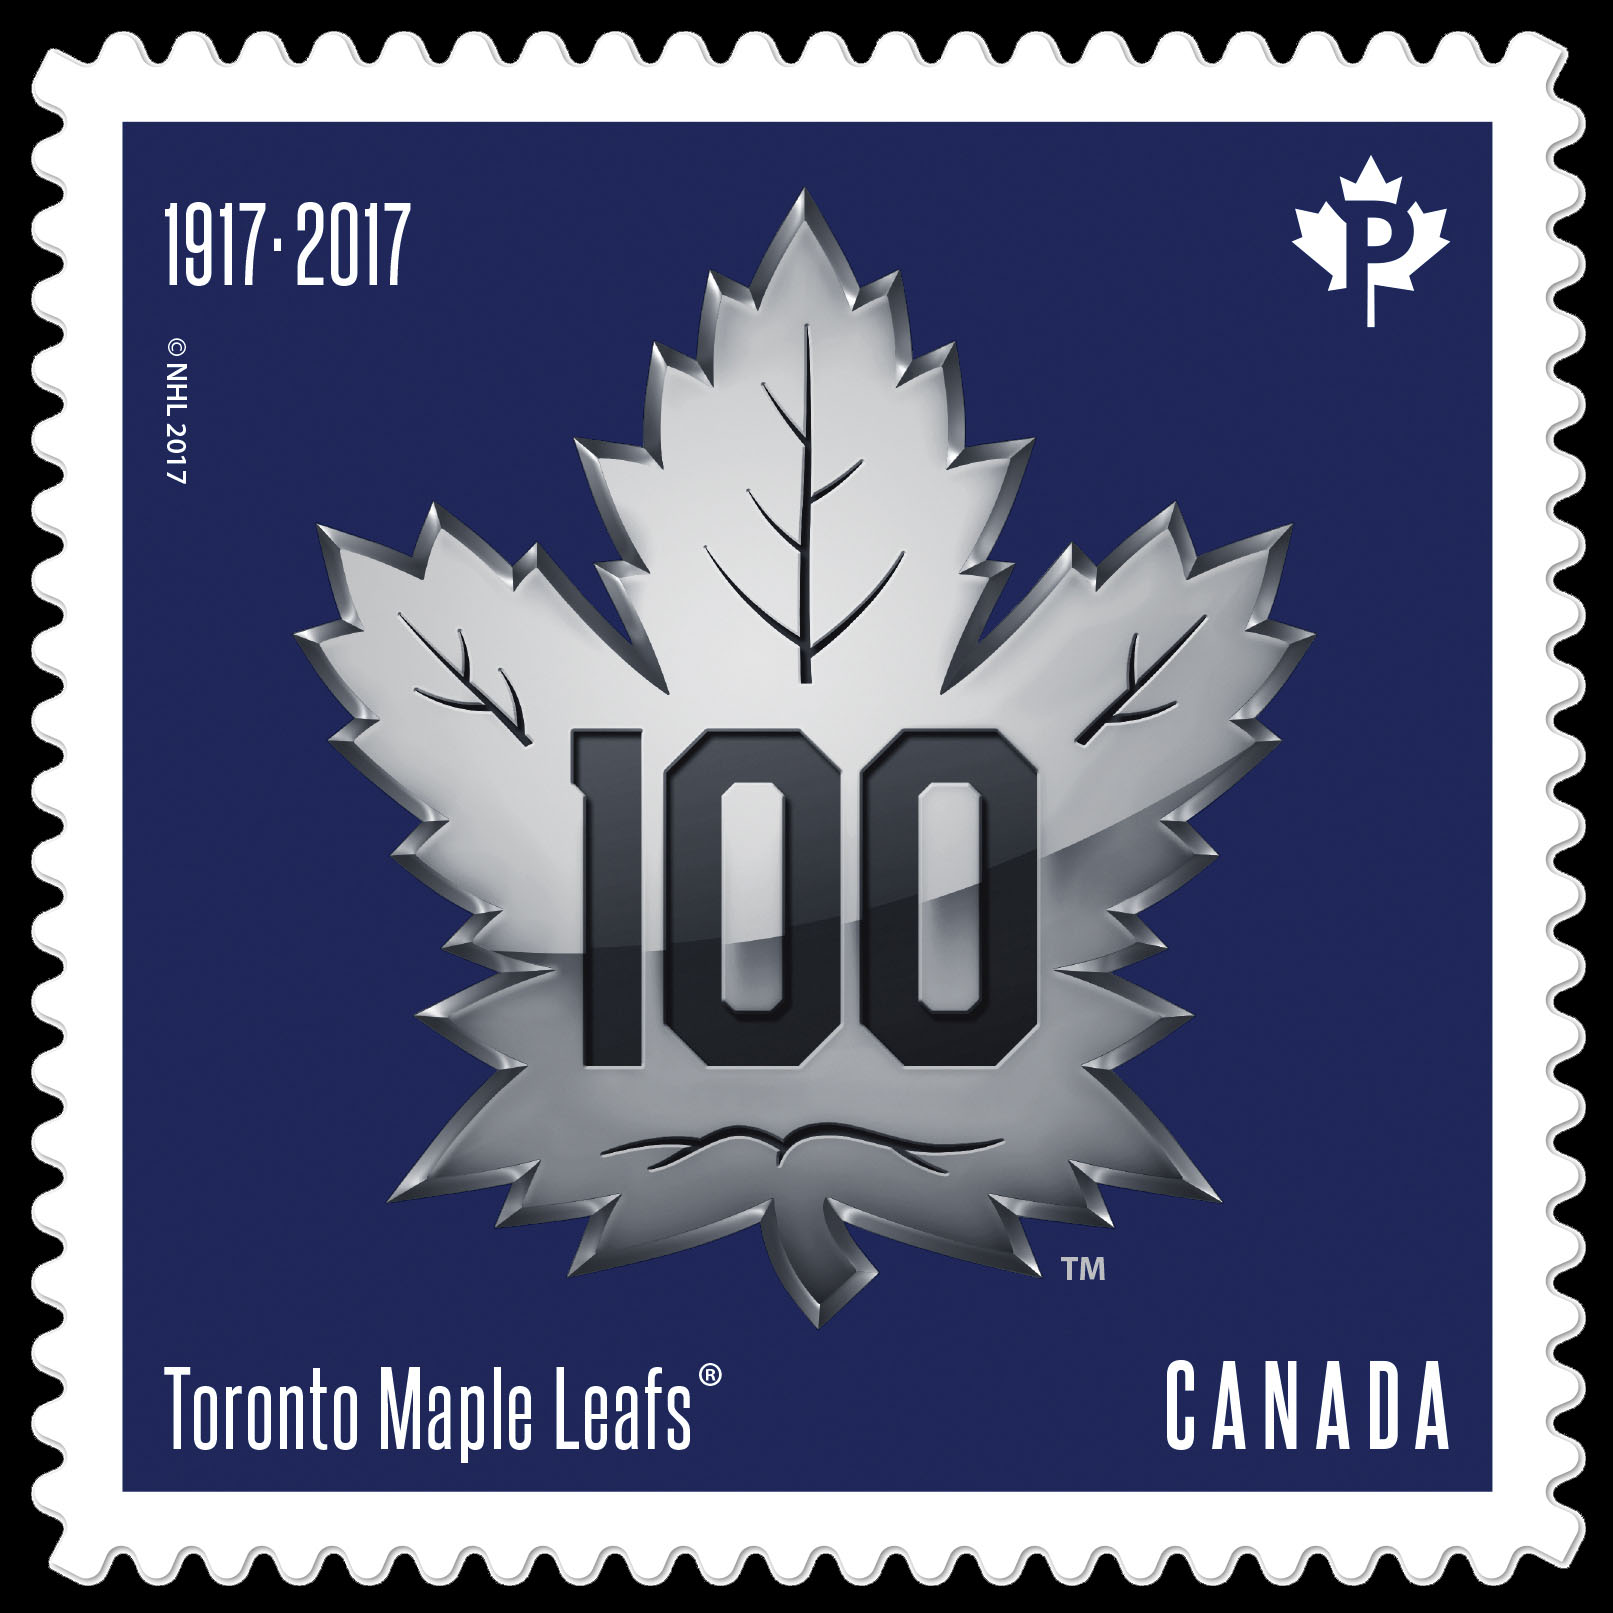 Toronto Maple Leafs 100th Anniversary - Logo Canada Postage Stamp